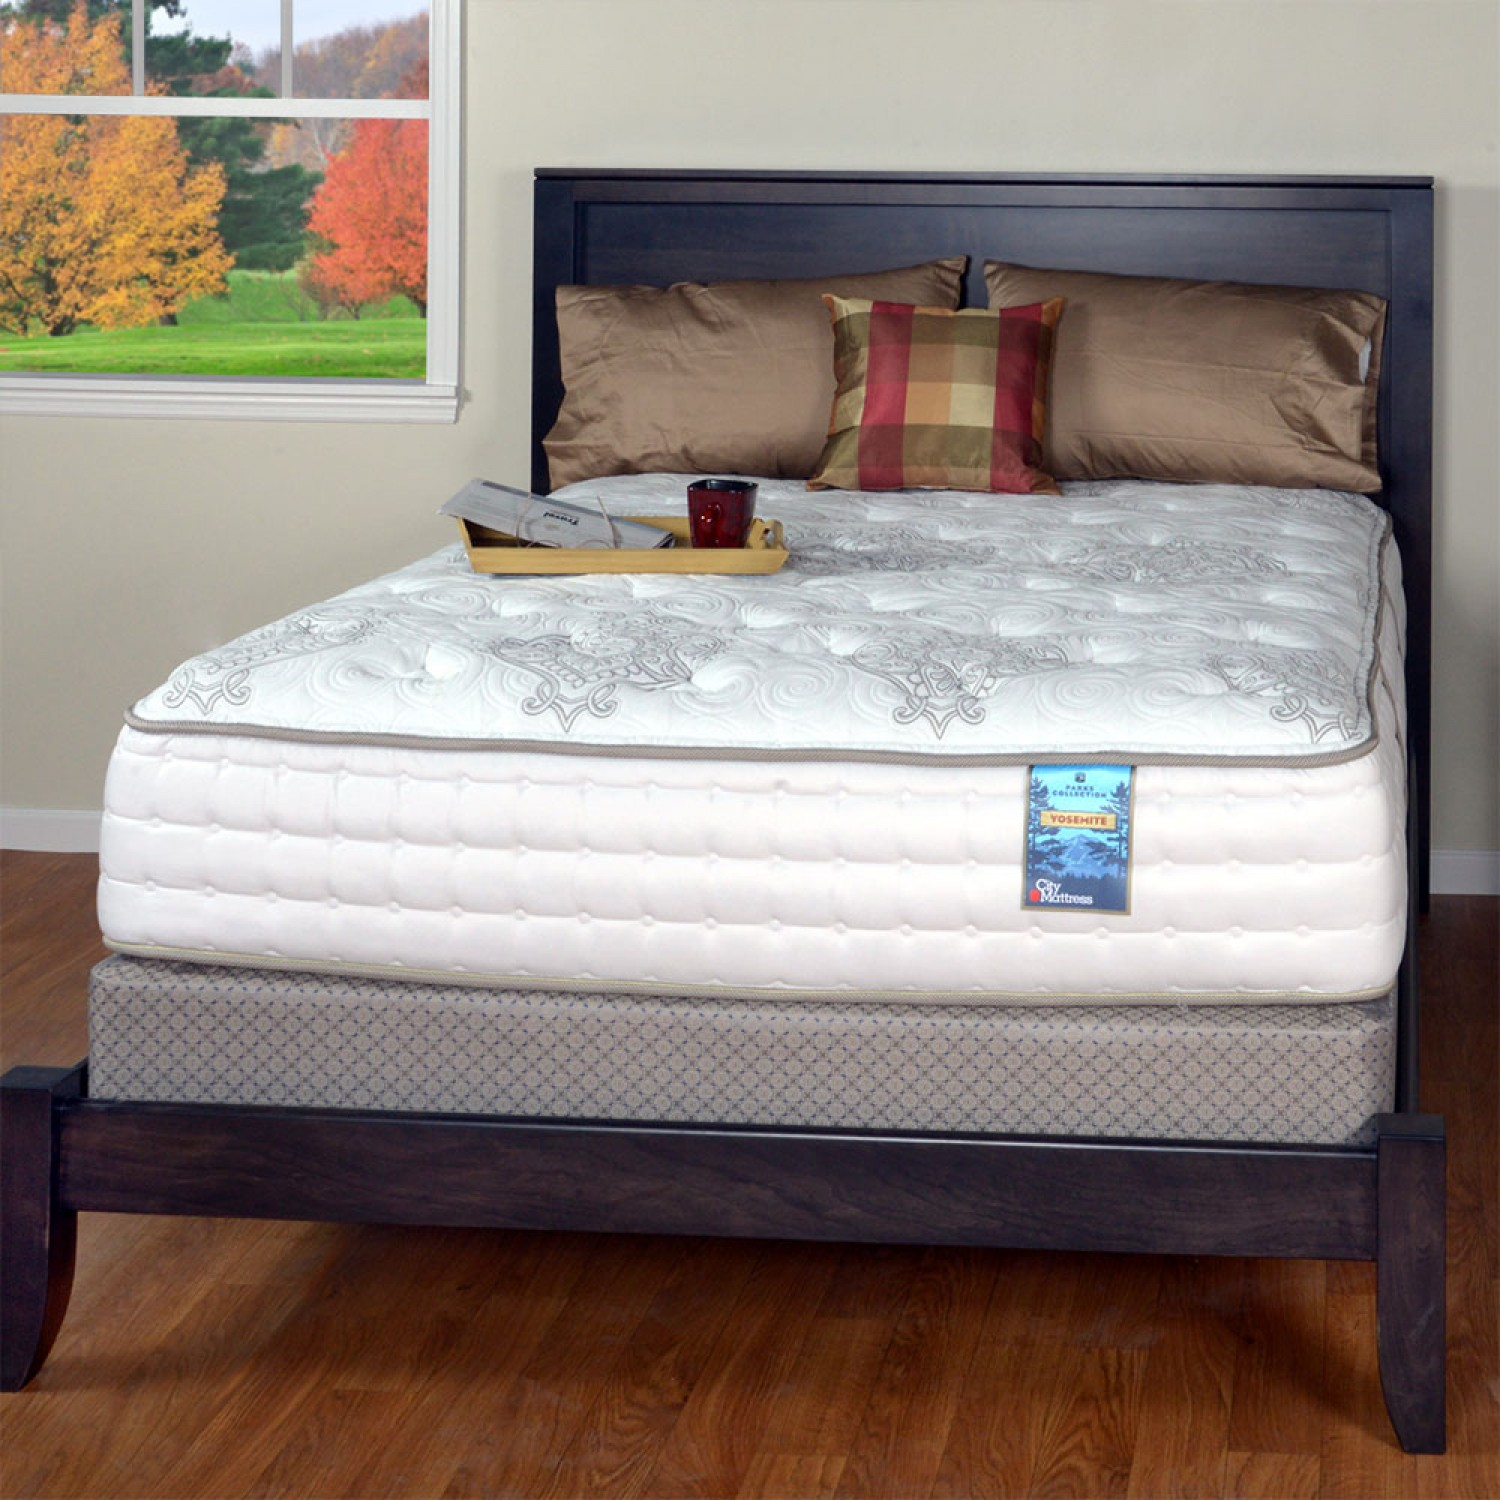 showroom ny life best about keetsa sleep better newyork los new in angeles friendly york store city eco mattress